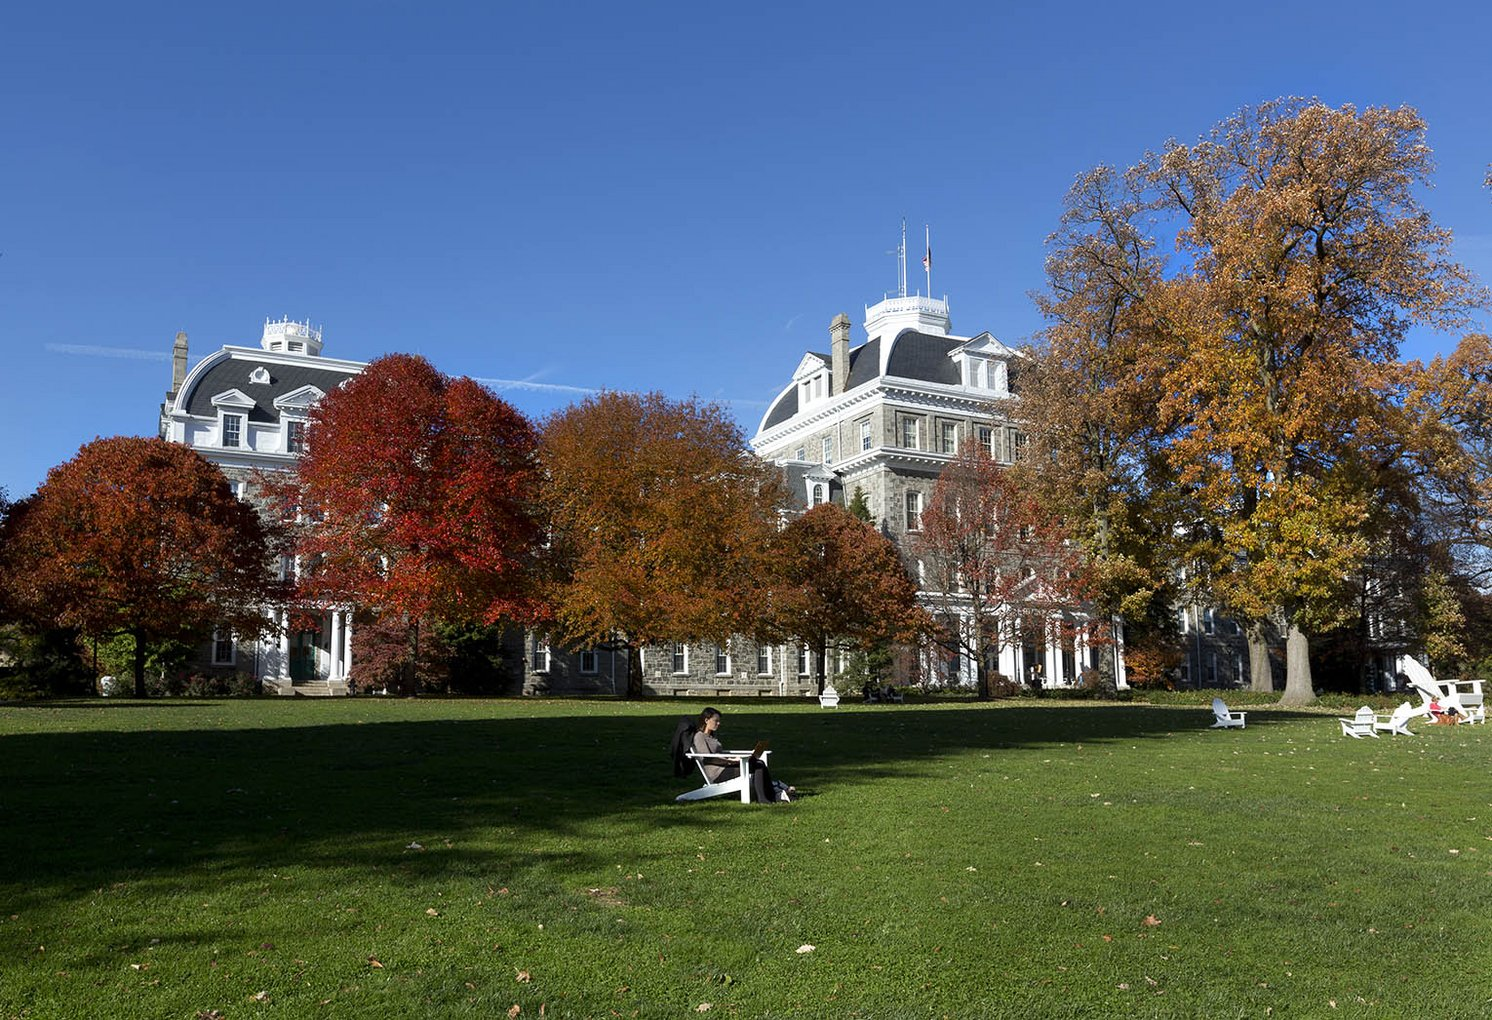 Parrish Hall Dome in Fall Foilage